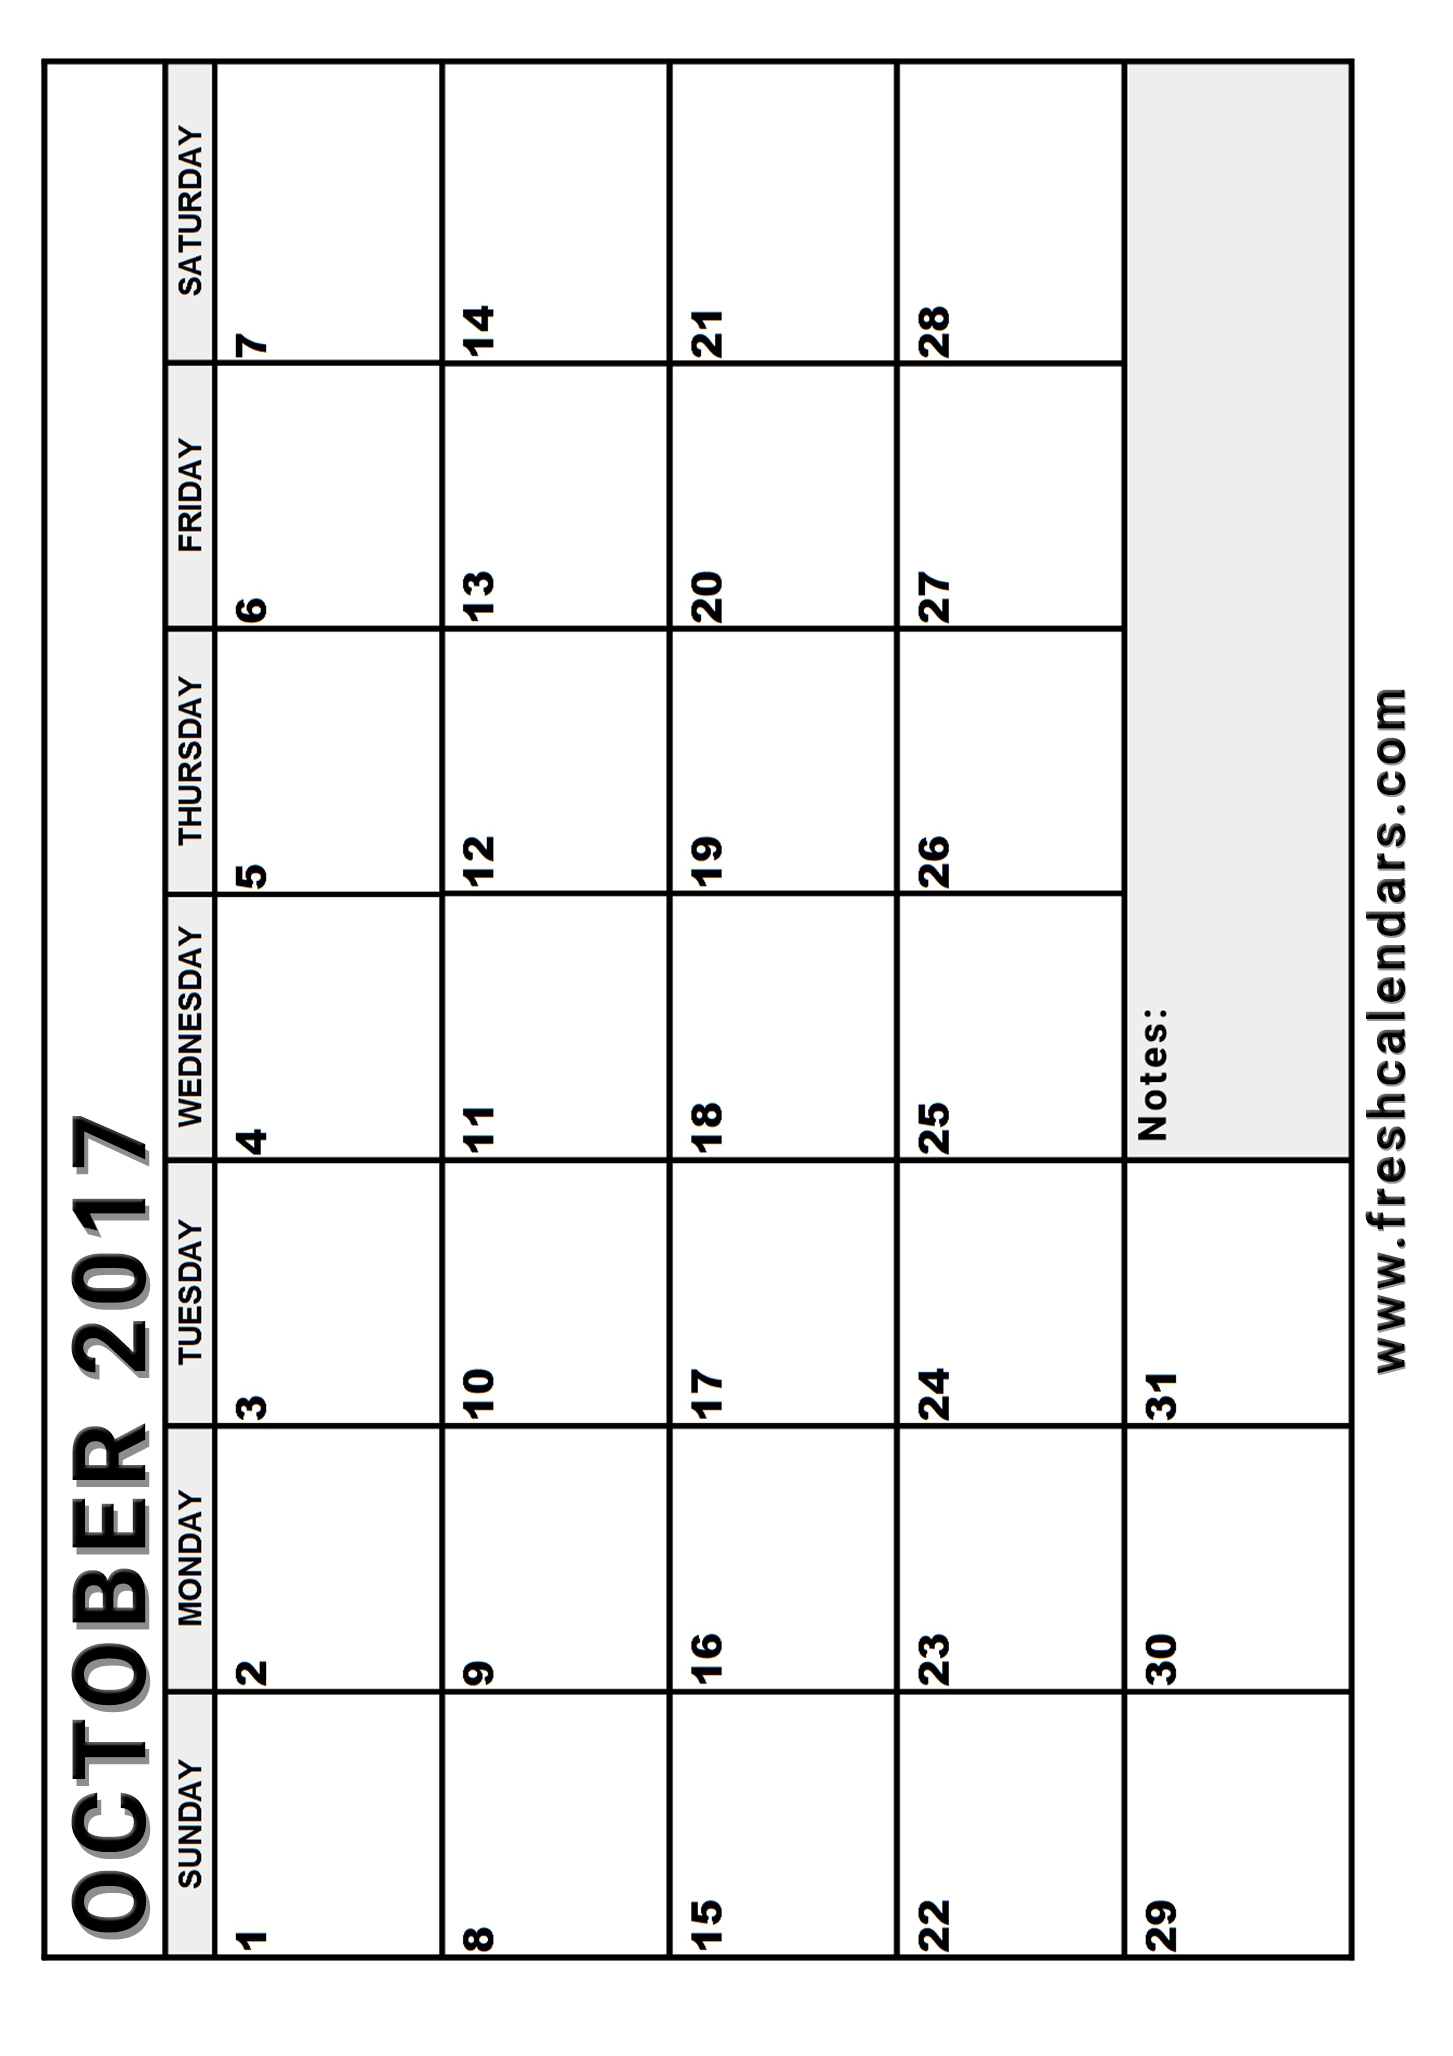 Calendar Templates Vertical : Blank october calendar printable templates